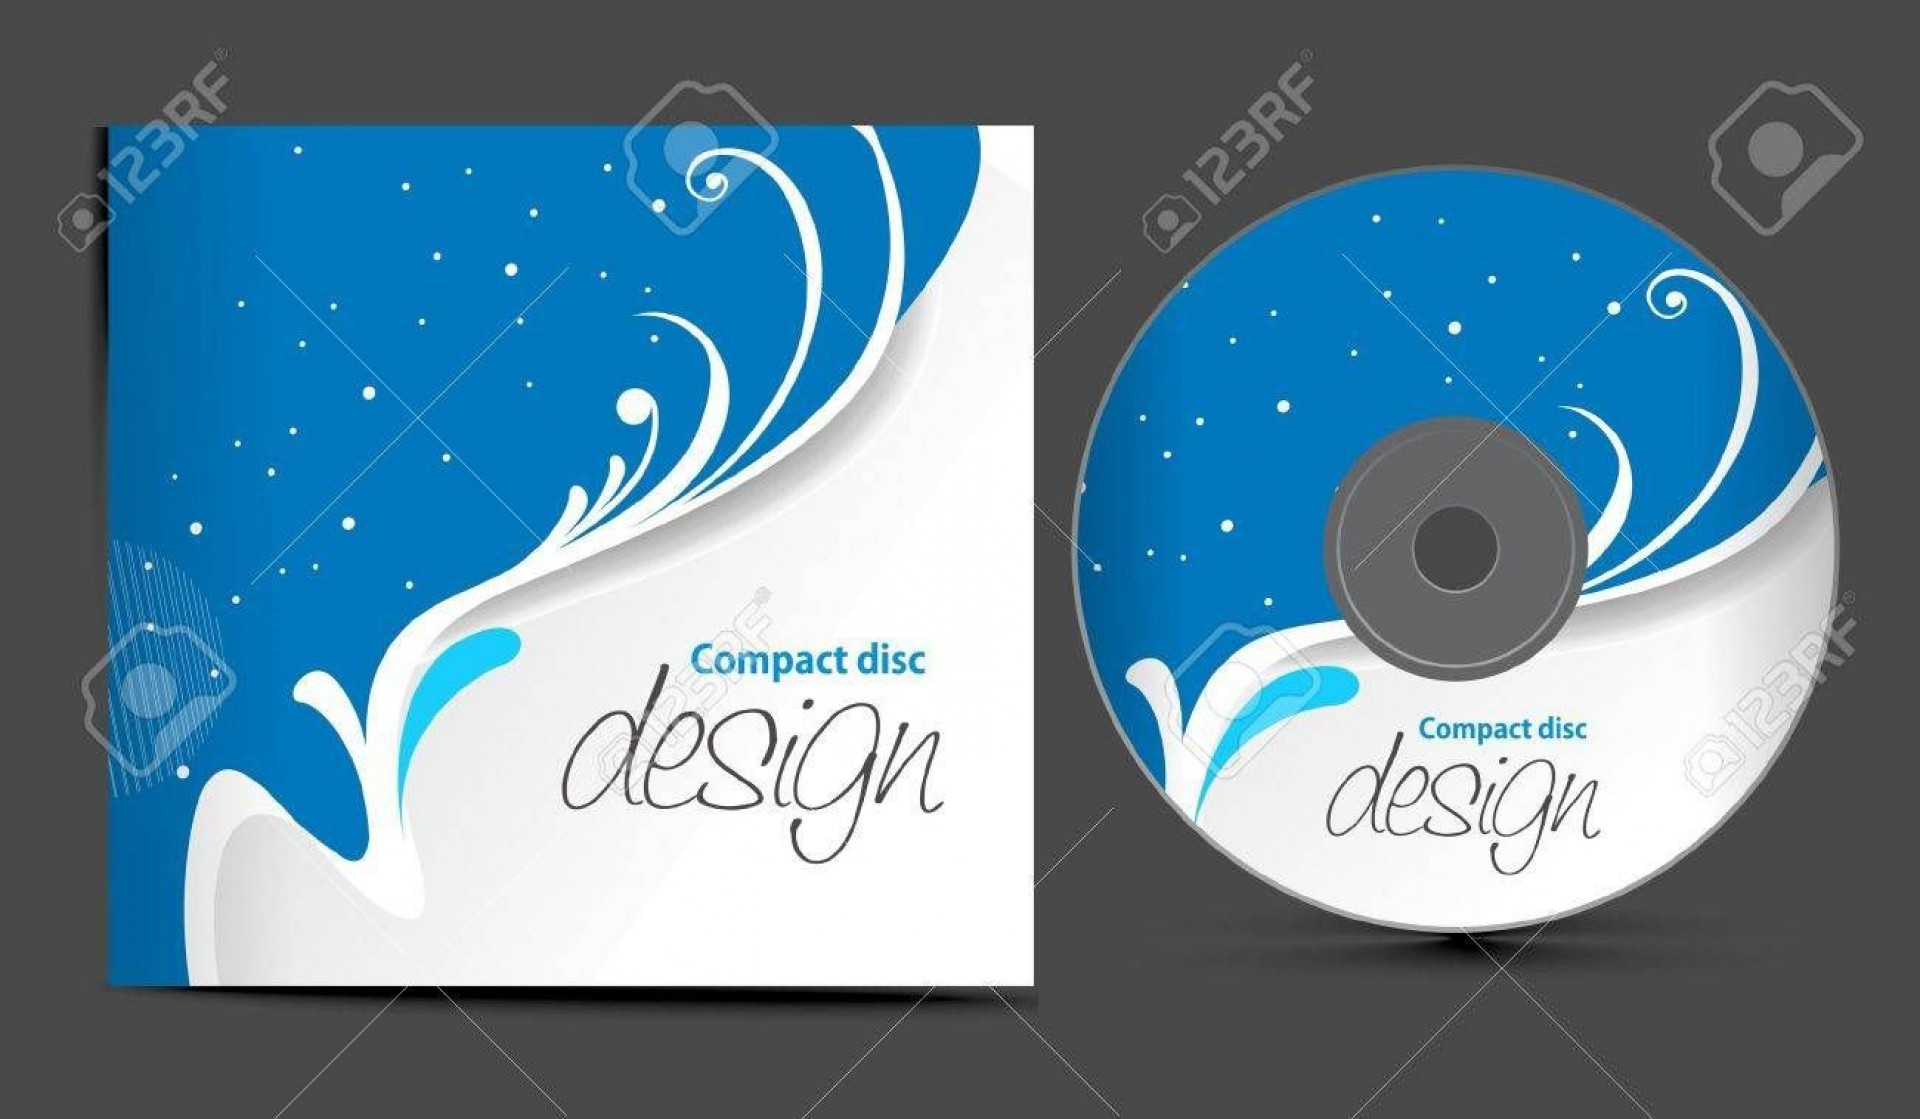 000 Remarkable Cd Cover Design Template High Definition  Free Vector Illustration Word Psd Download1920